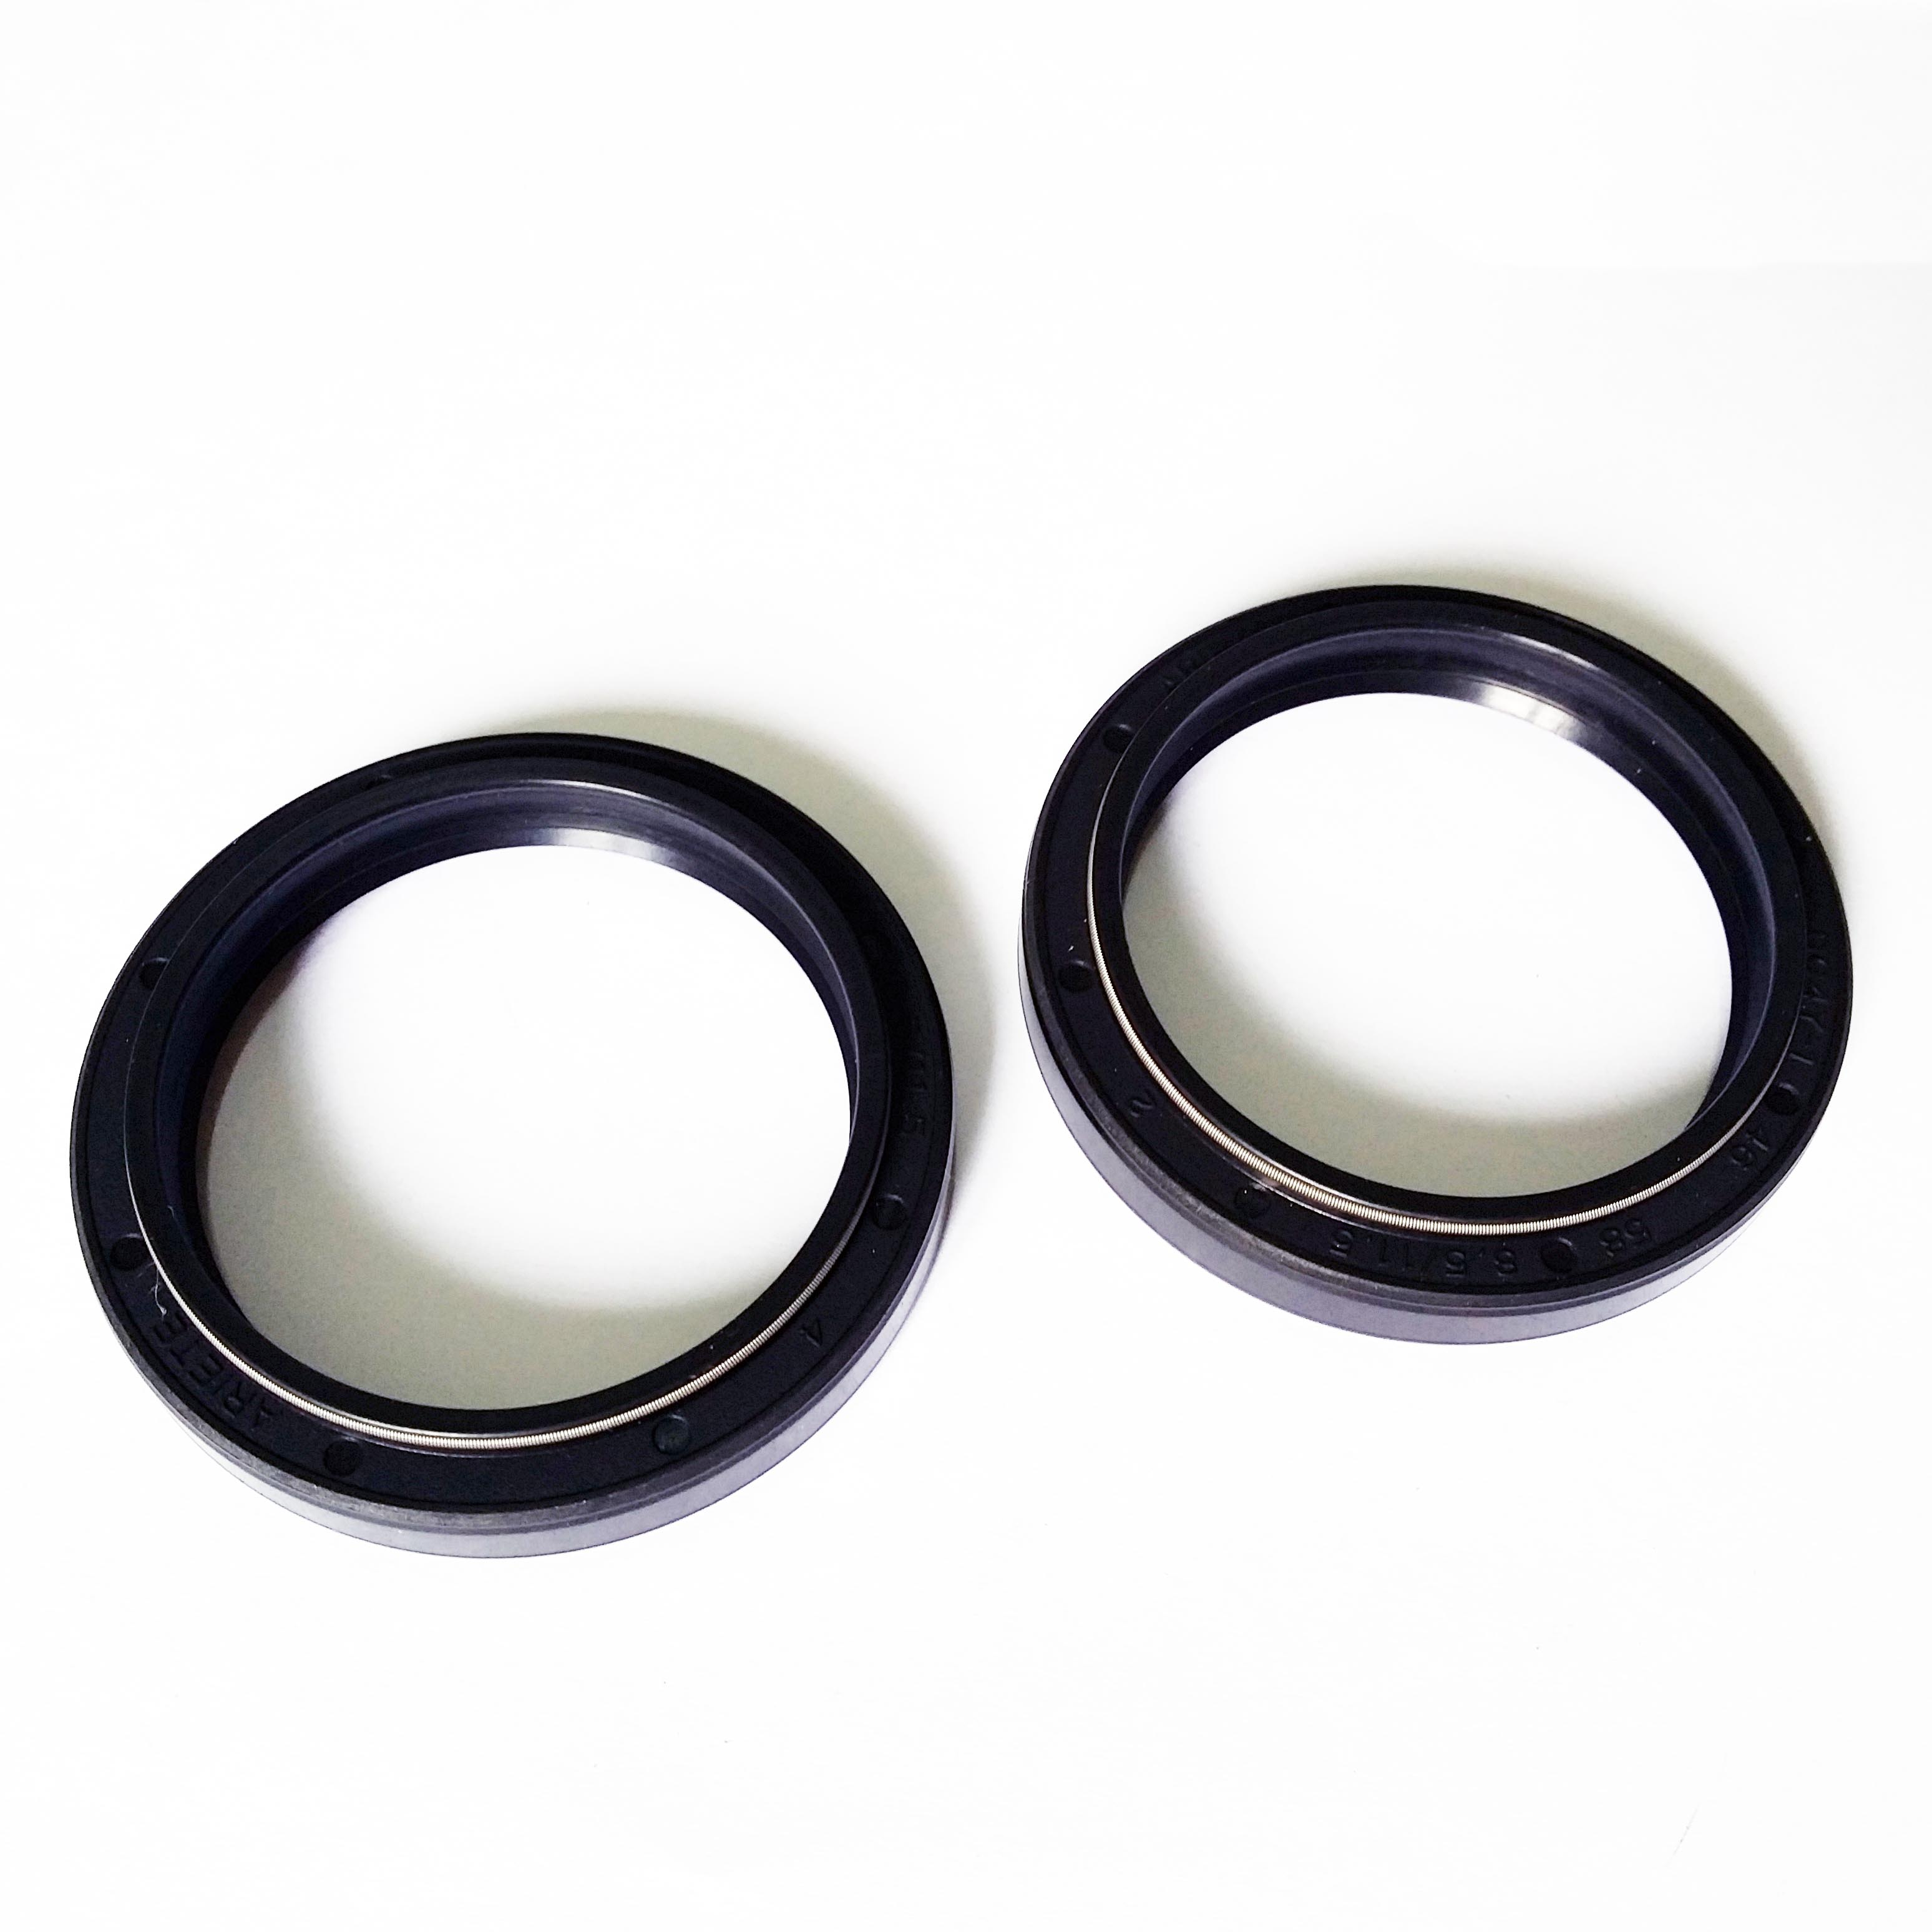 K-Tech KTM 300 EXC Six Days 2008-2016 NOK Front Fork Oil Seals